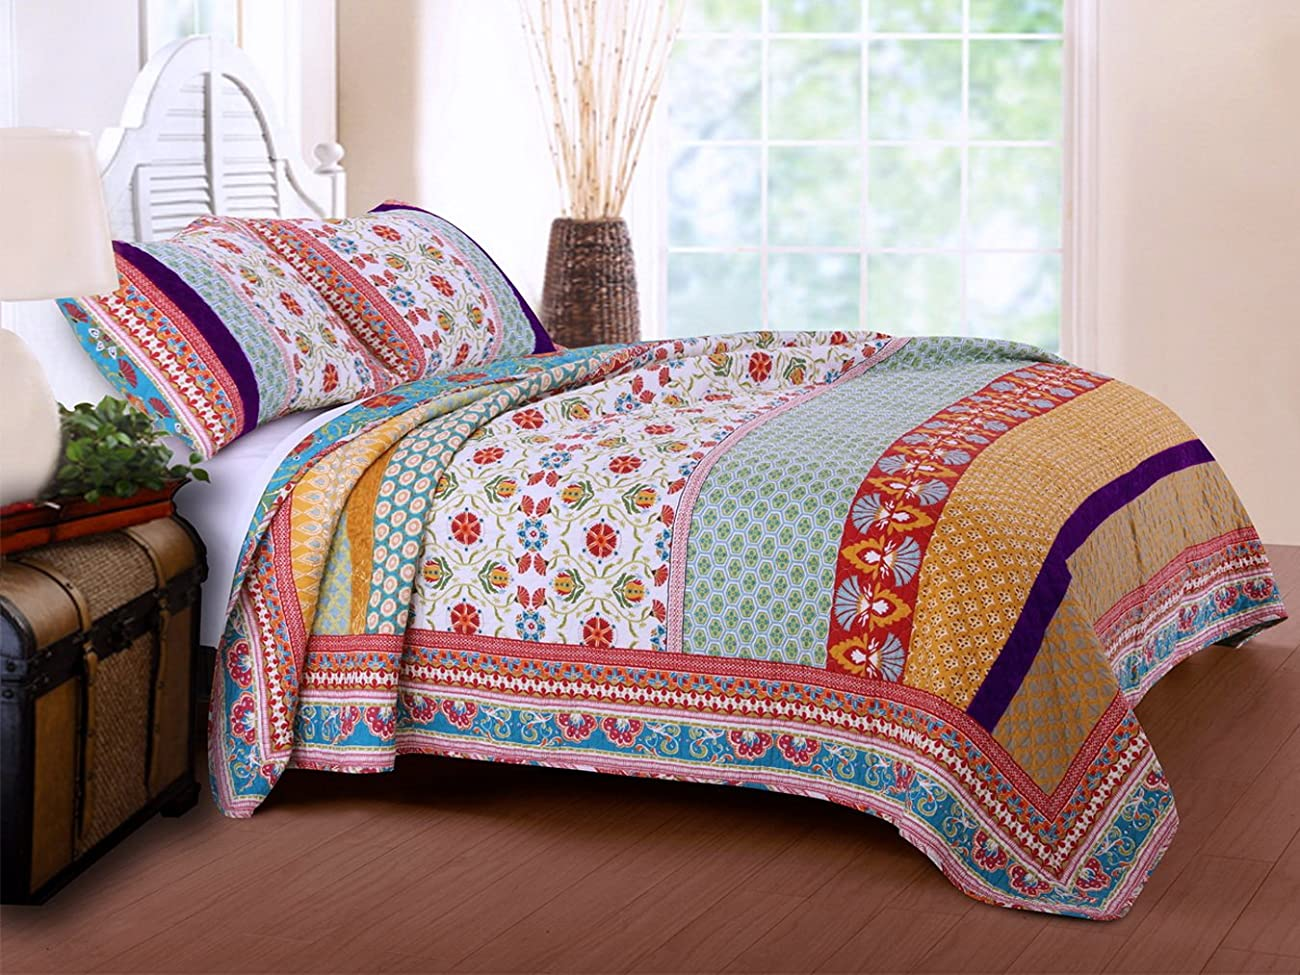 Retro Boho Quilt Set with Shams Print Geometric Floral Pattern Mandala Medallions Blue Red Yellow 100 Cotton Reversible 3 Piece Bedding Double Full Queen - Includes Bed Sheet Straps 1